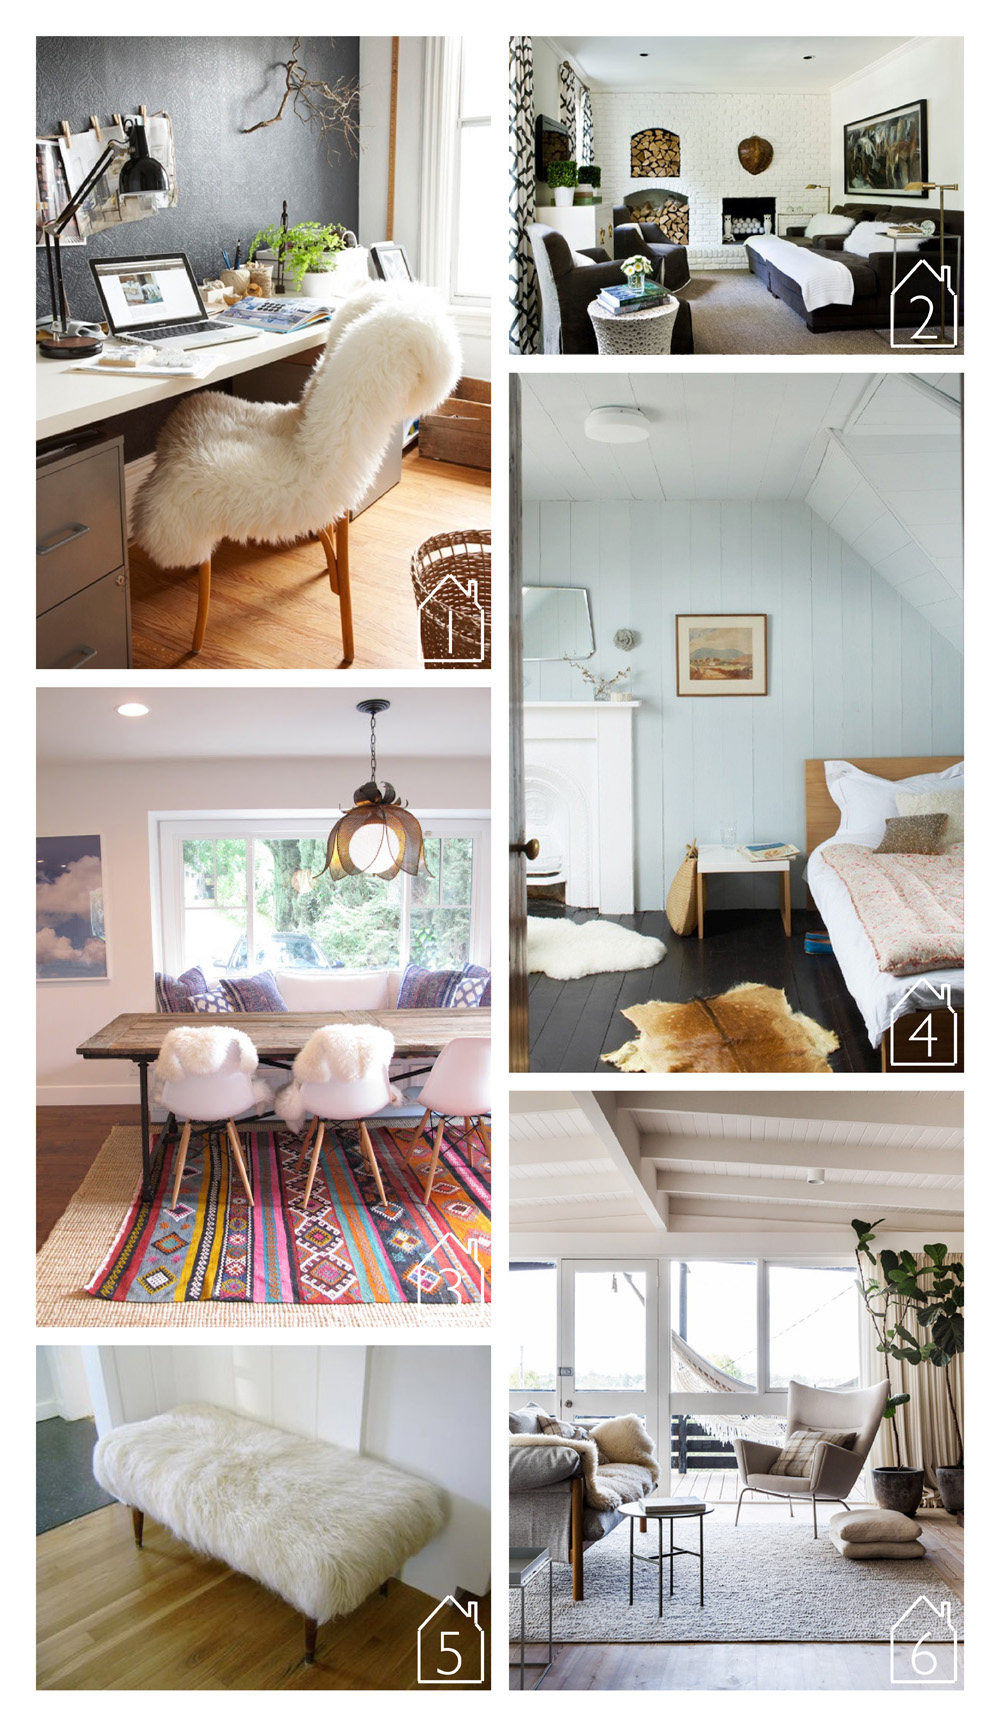 1. source unknown  2. Melanie Turner Interiors  3. Amber Interiors  4. source unknown  5. The Brick House  6. via The Design Files Daily home of Simone and Rhys Haag